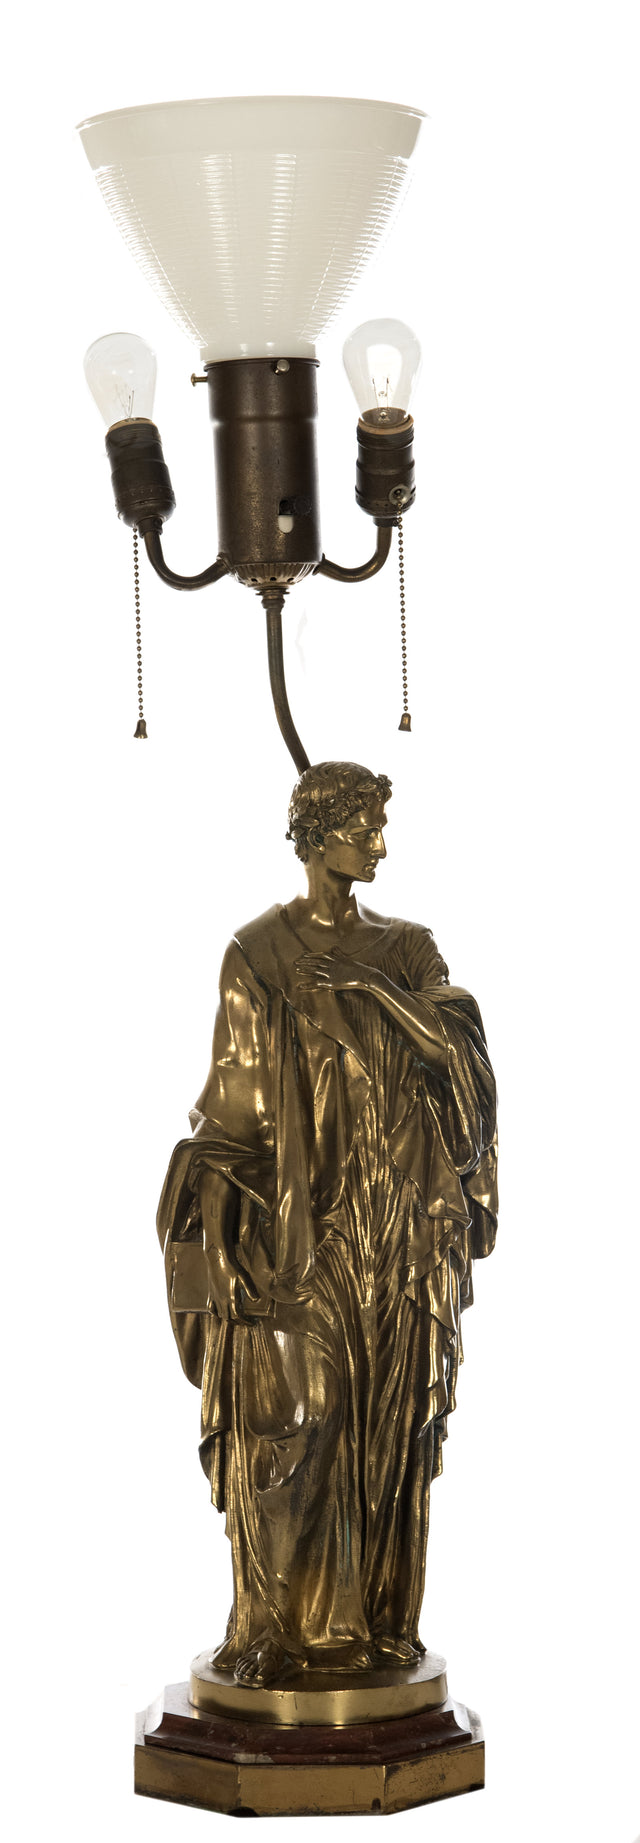 Tiffany & Co. Gilt-painted Bronze Figural Table Lamp